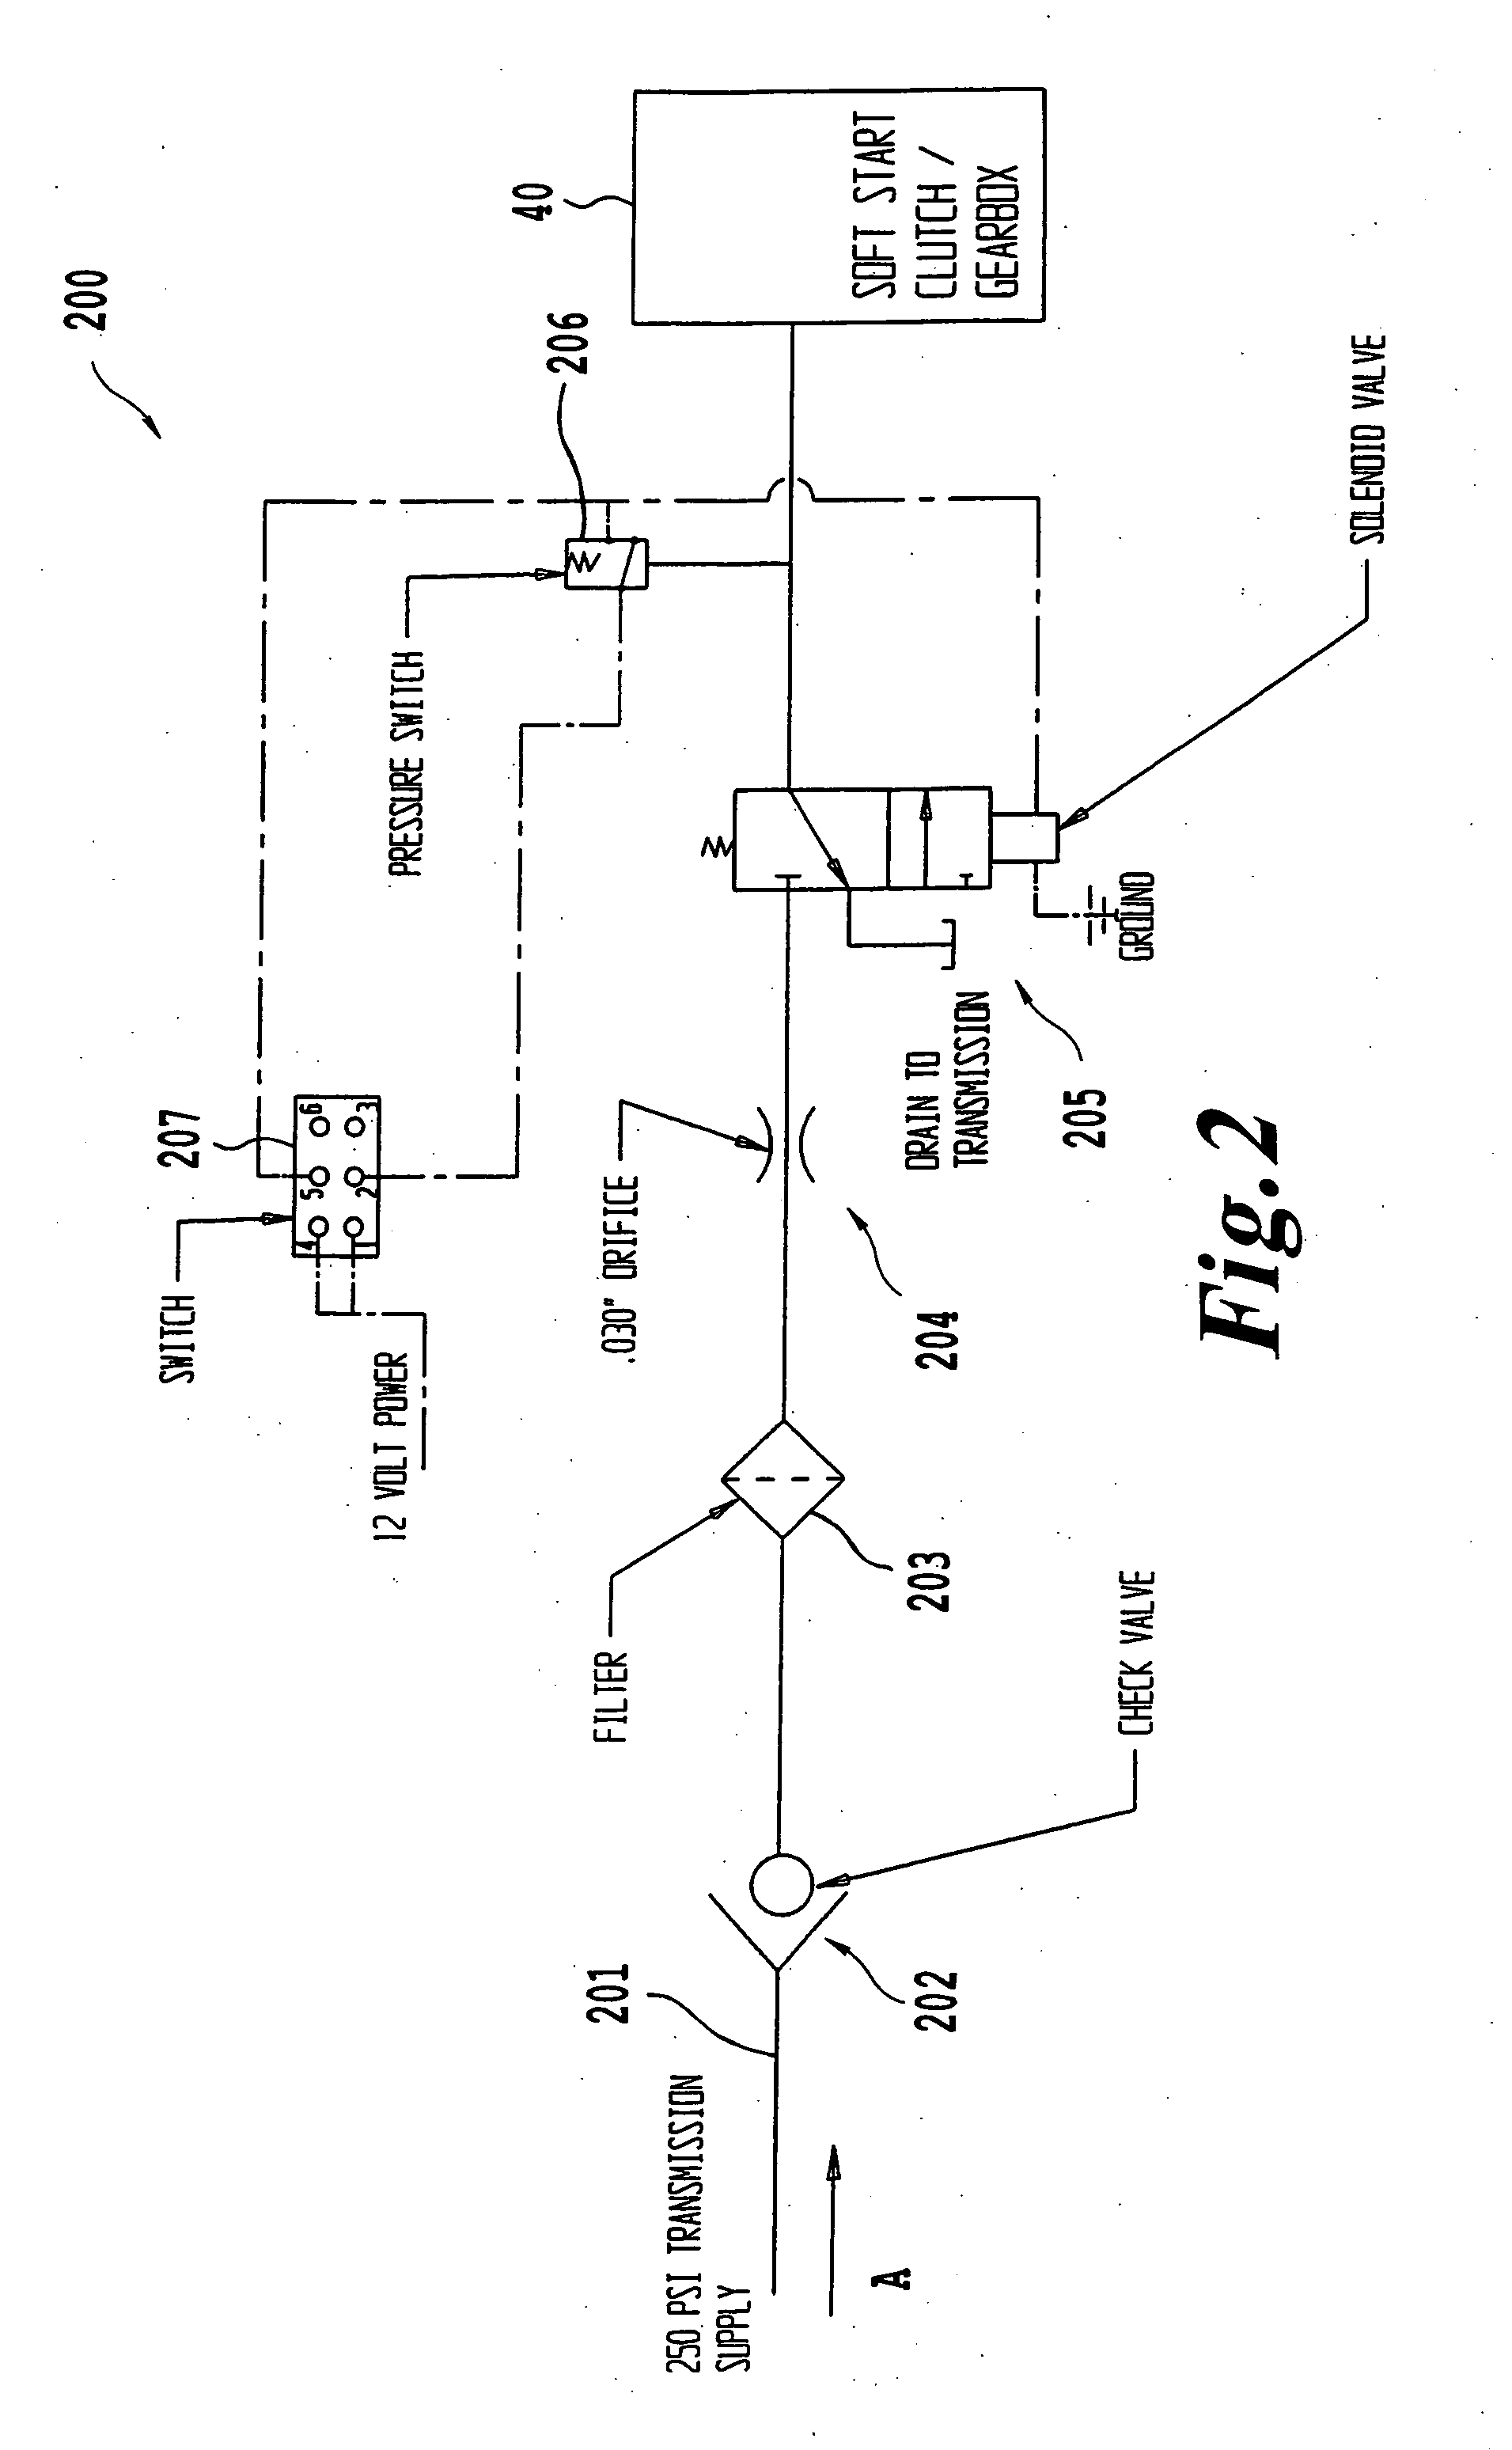 US20060214035A1 20060928 D00003 patent us20060214035 system and method of implementing a soft PTO Switch Wiring Diagram for Massey Furgeson at mifinder.co